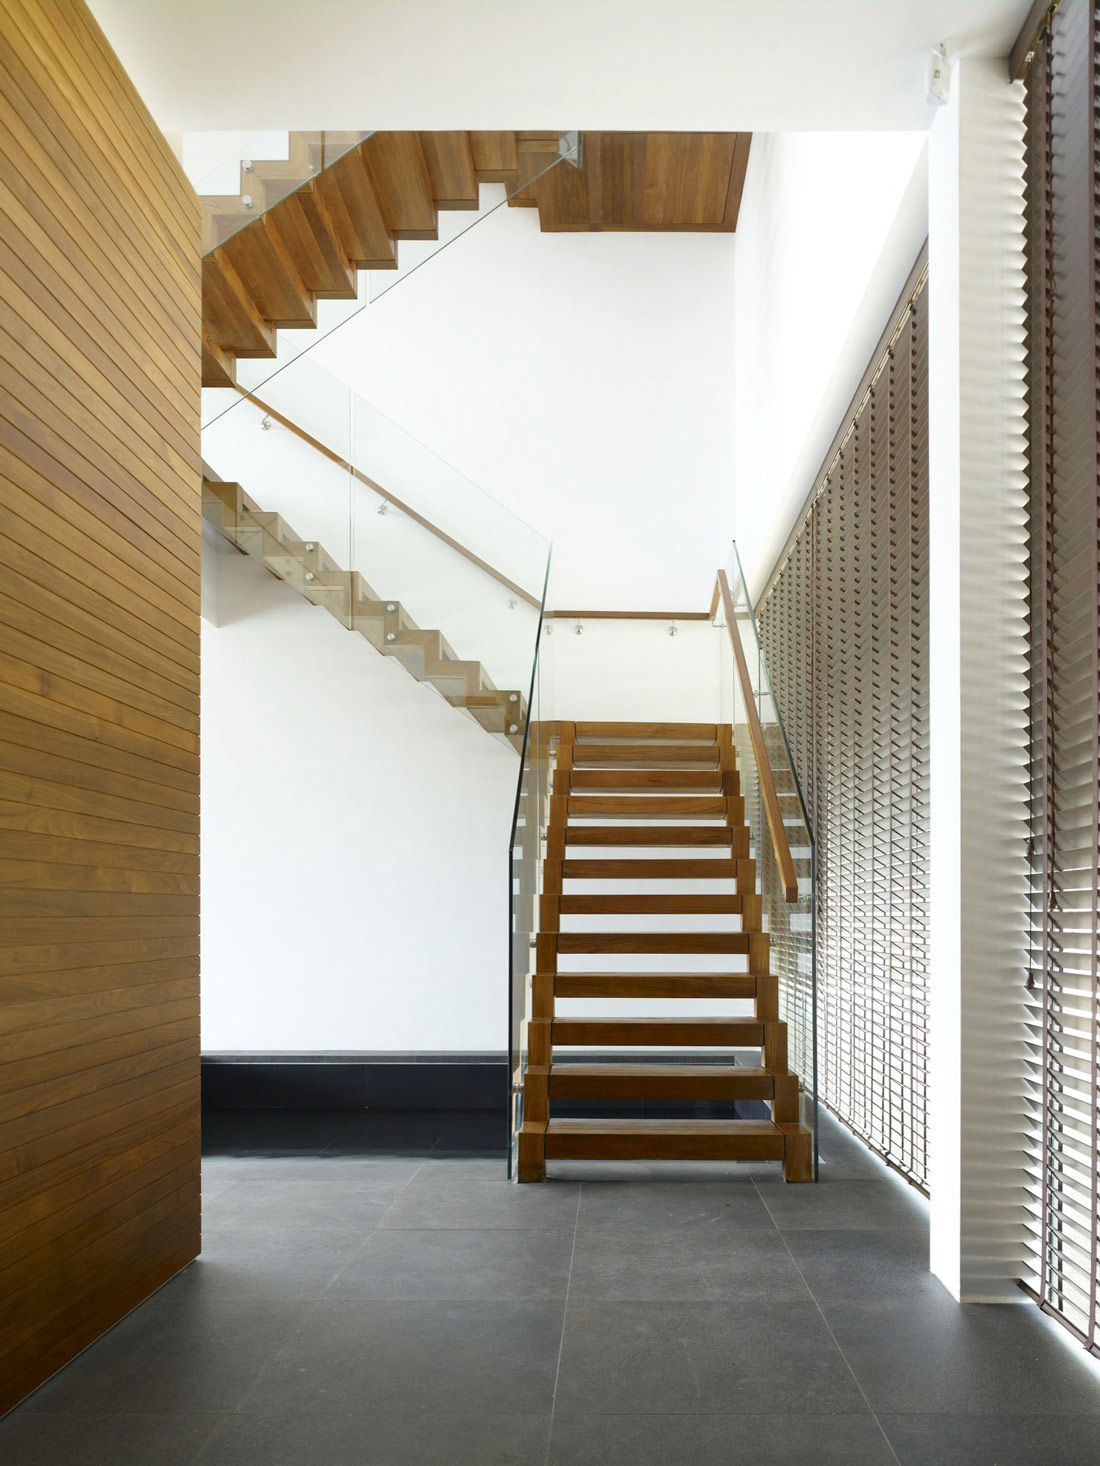 Stairs, Minimalist Contemporary Home in Singapore